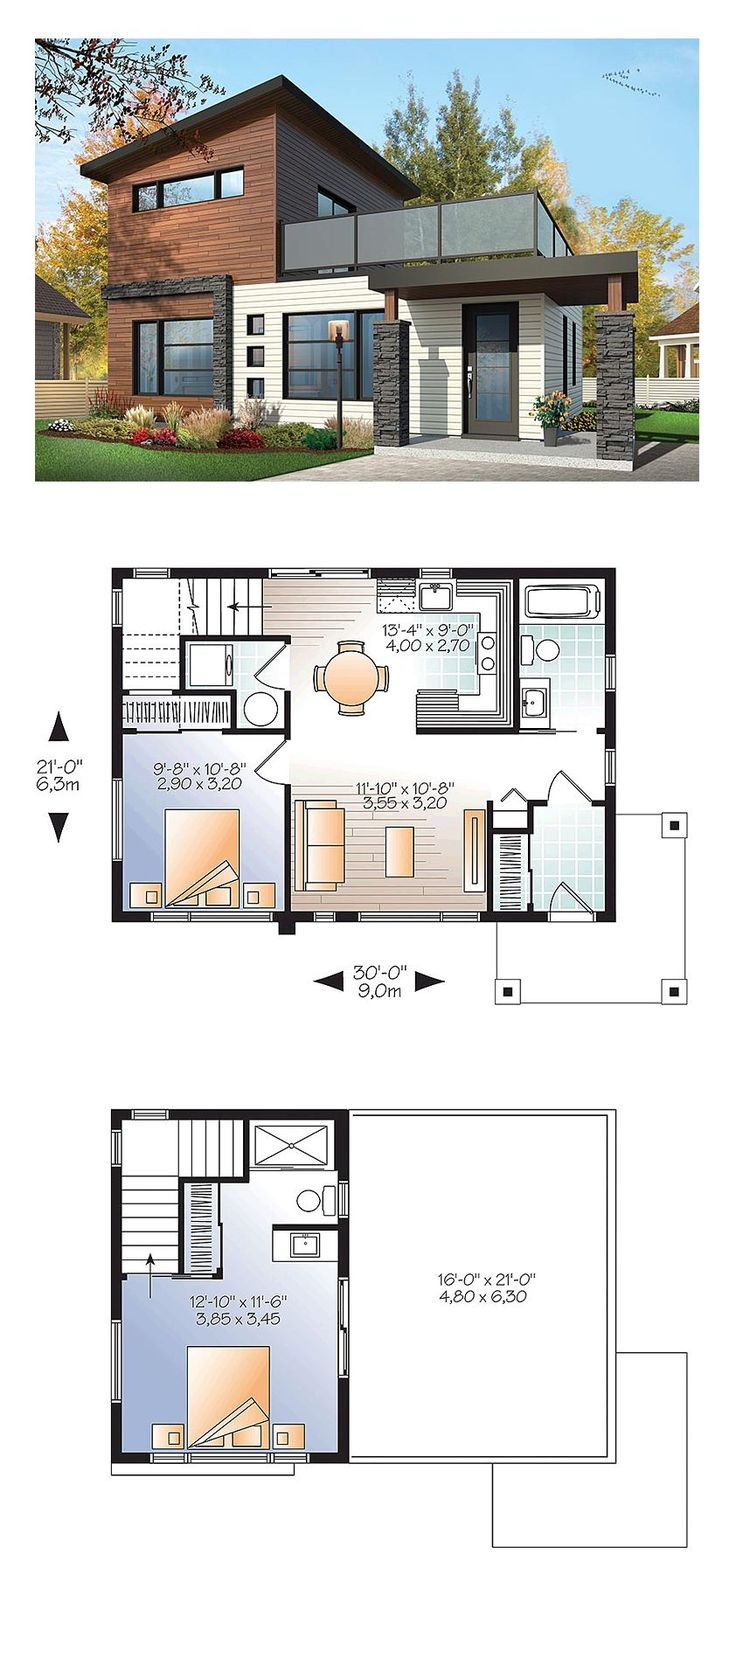 Small house floor plans · modern house plan 76461 total living area 924 sq ft 2